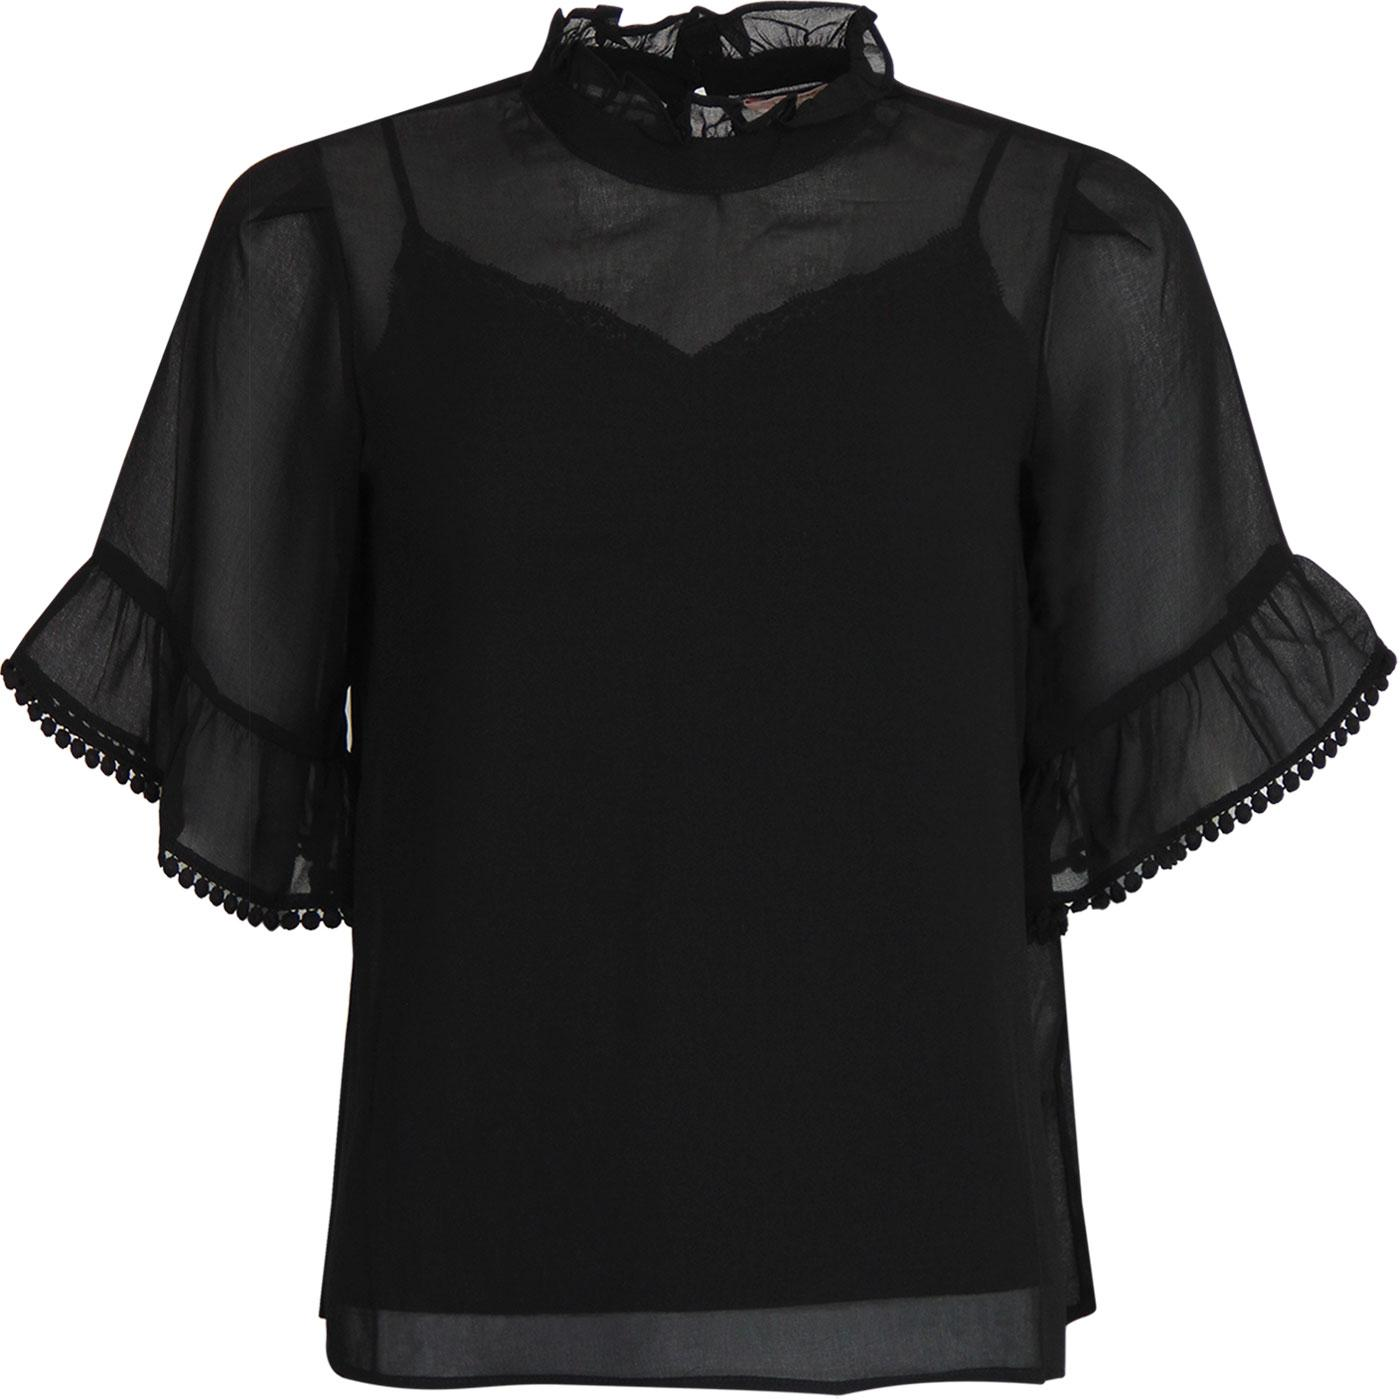 Bobble Top TRAFFIC PEOPLE Retro Sheer Top in Black